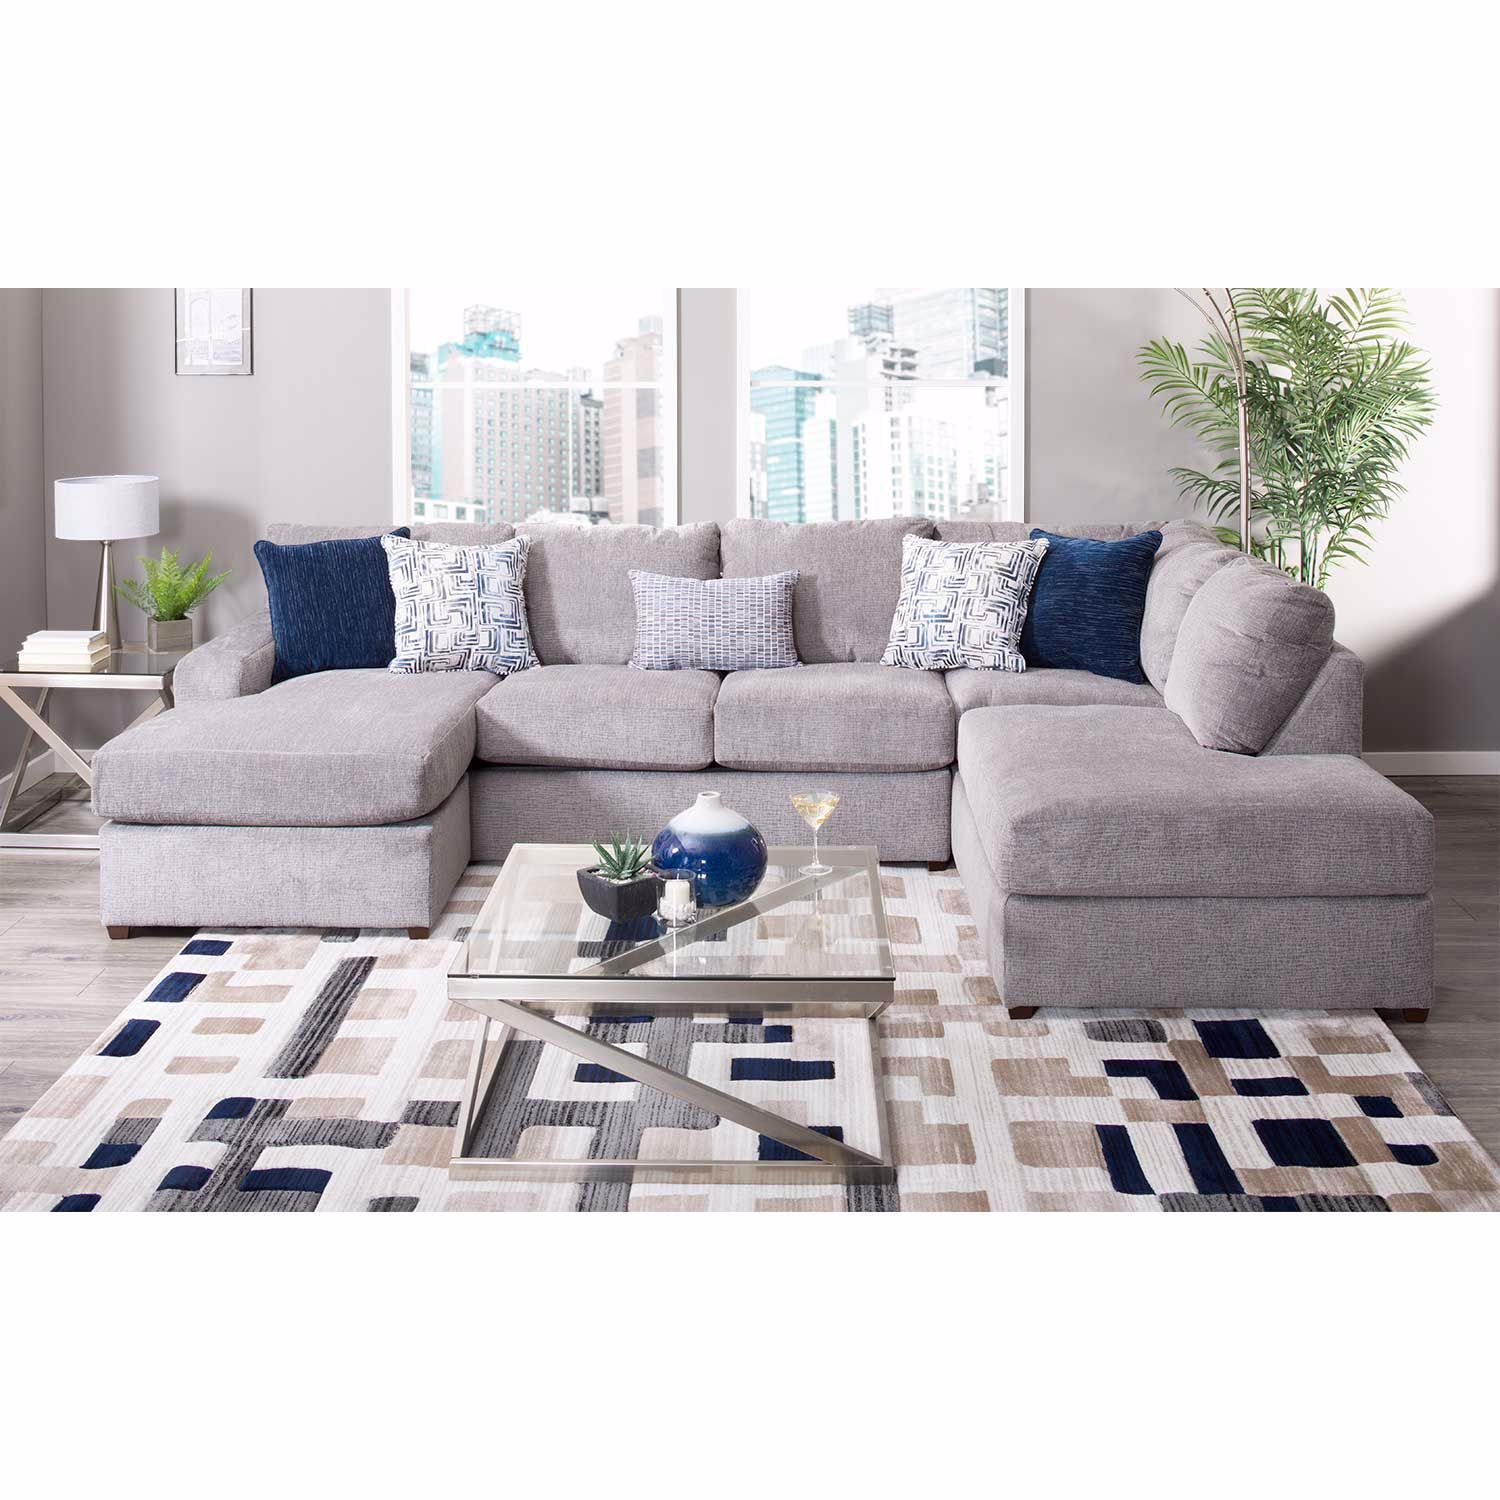 Oasis Flagstone 2 Piece LAF Sofa Chaise Sectional